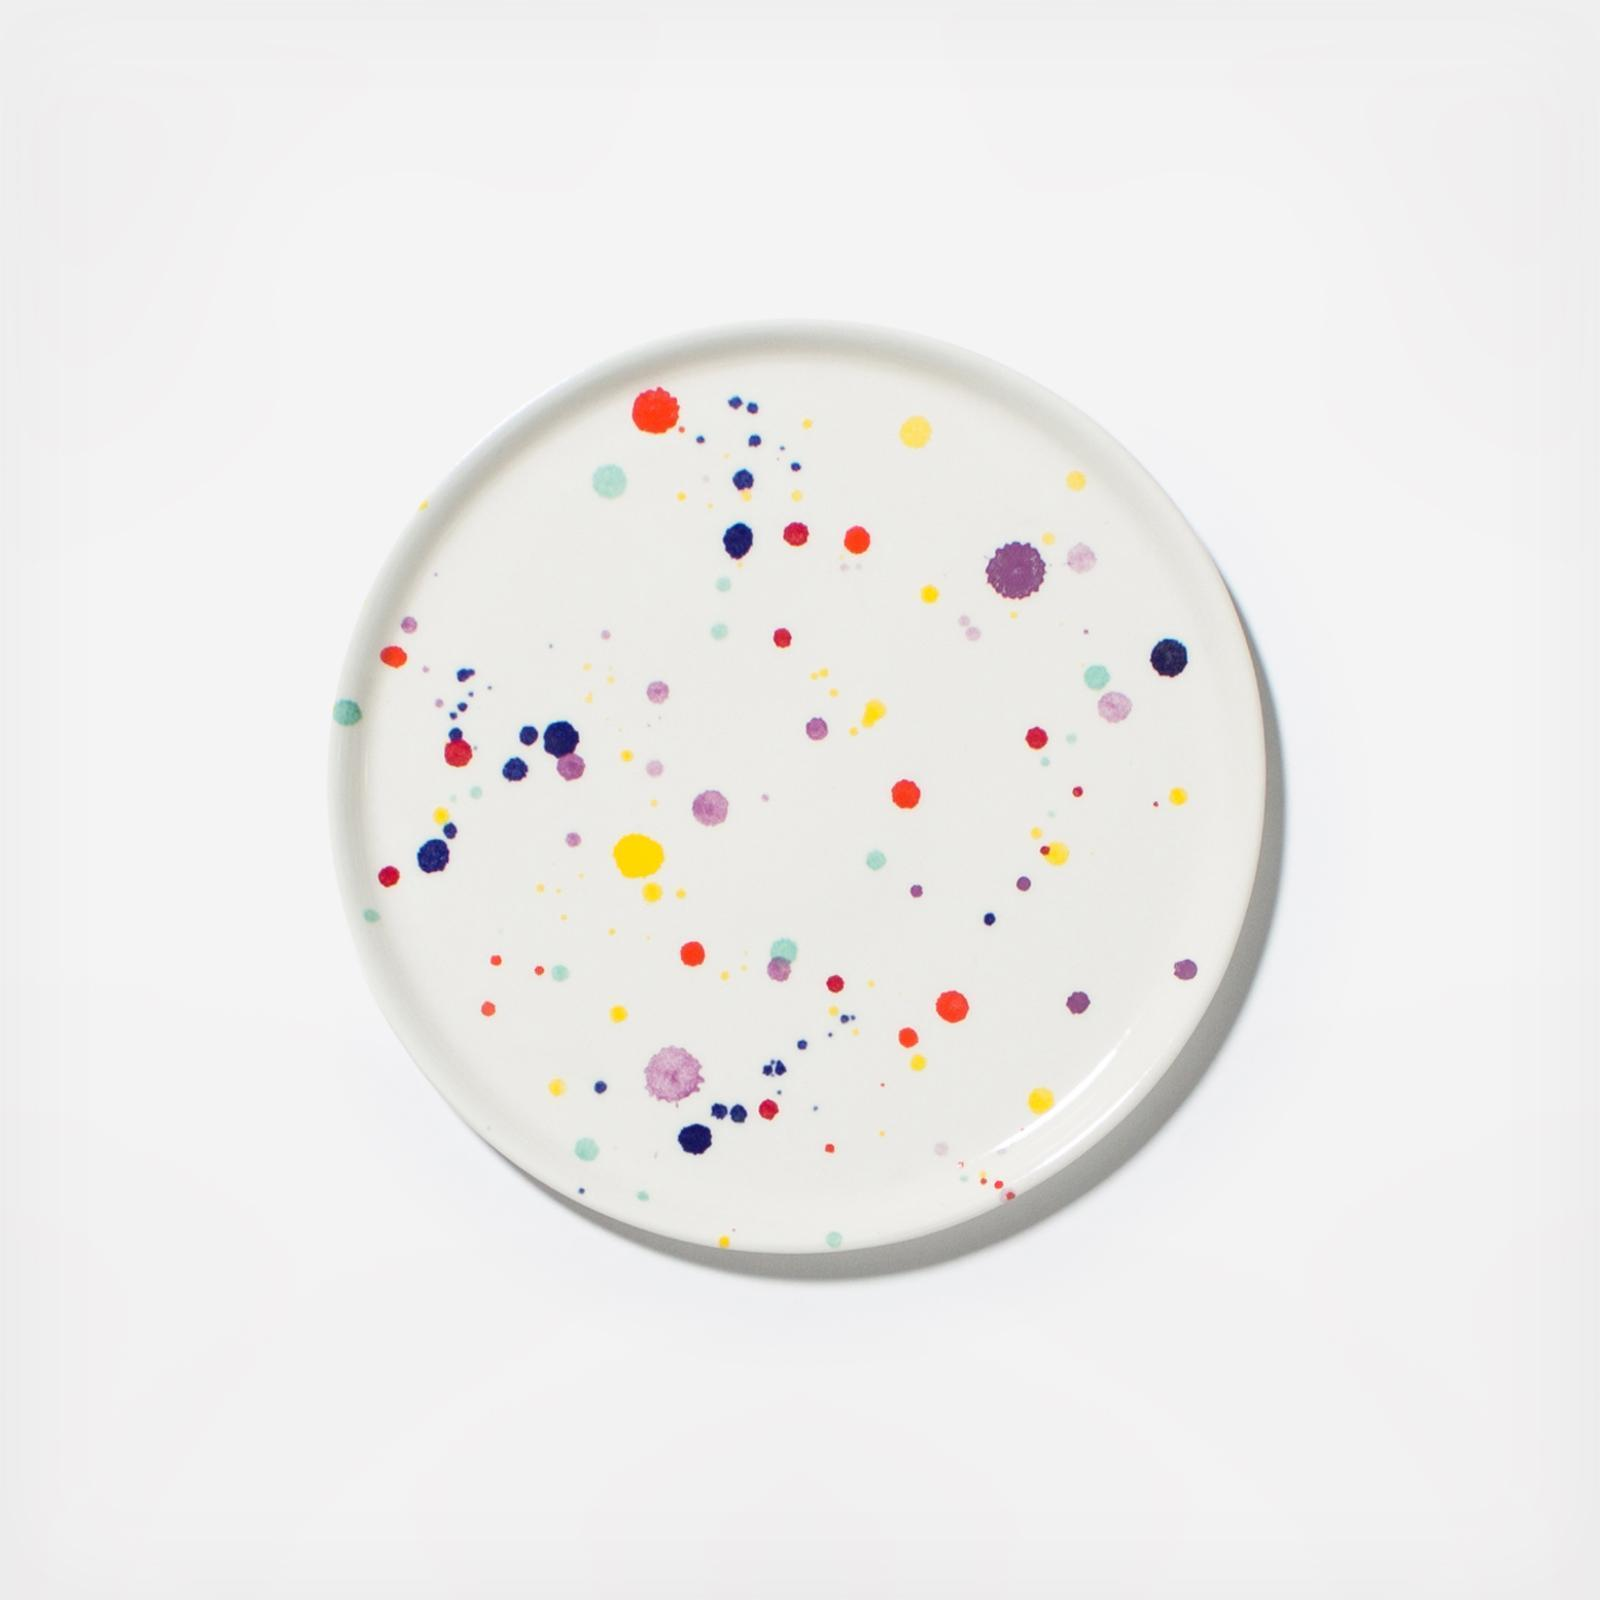 Confetti Share Plate By Felt Fat Wedding Planning Registry Gifts